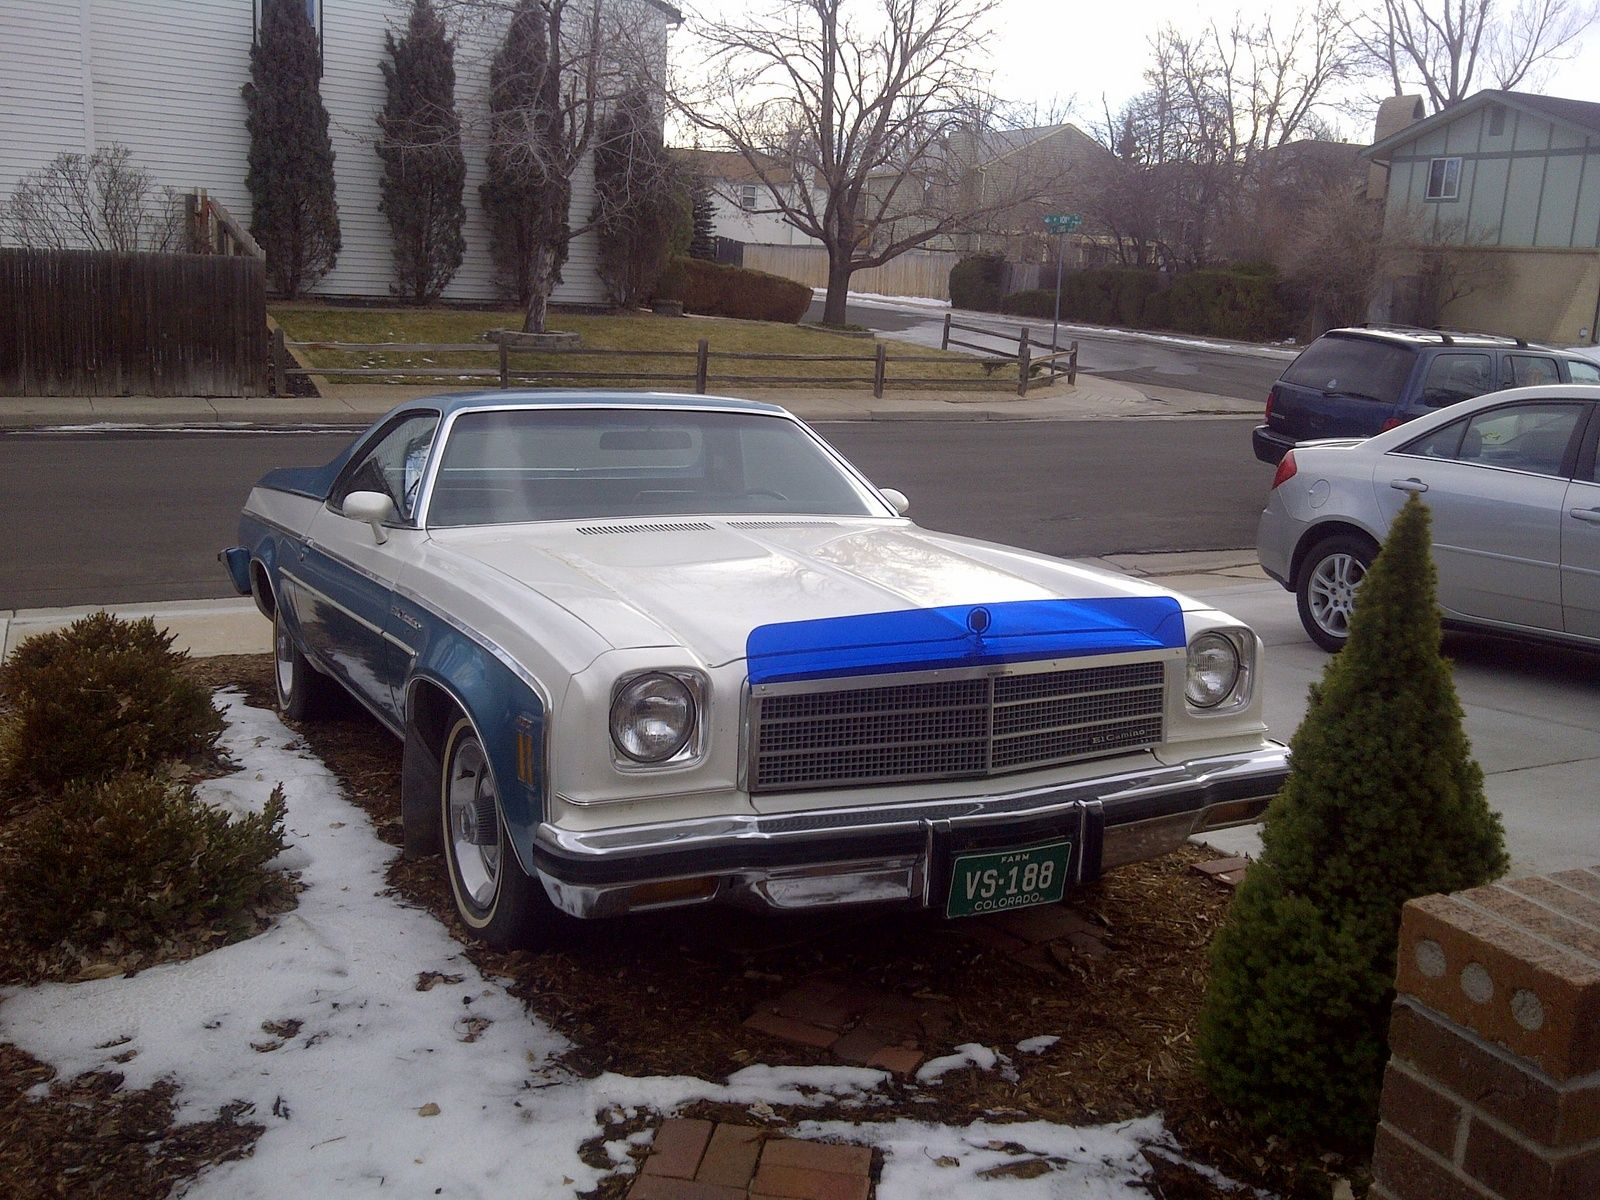 1974 chevrolet el camino pictures see 25 pics for 1974 chevrolet el camino browse interior and exterior photos for 1974 chevrolet el camino  [ 1600 x 1200 Pixel ]